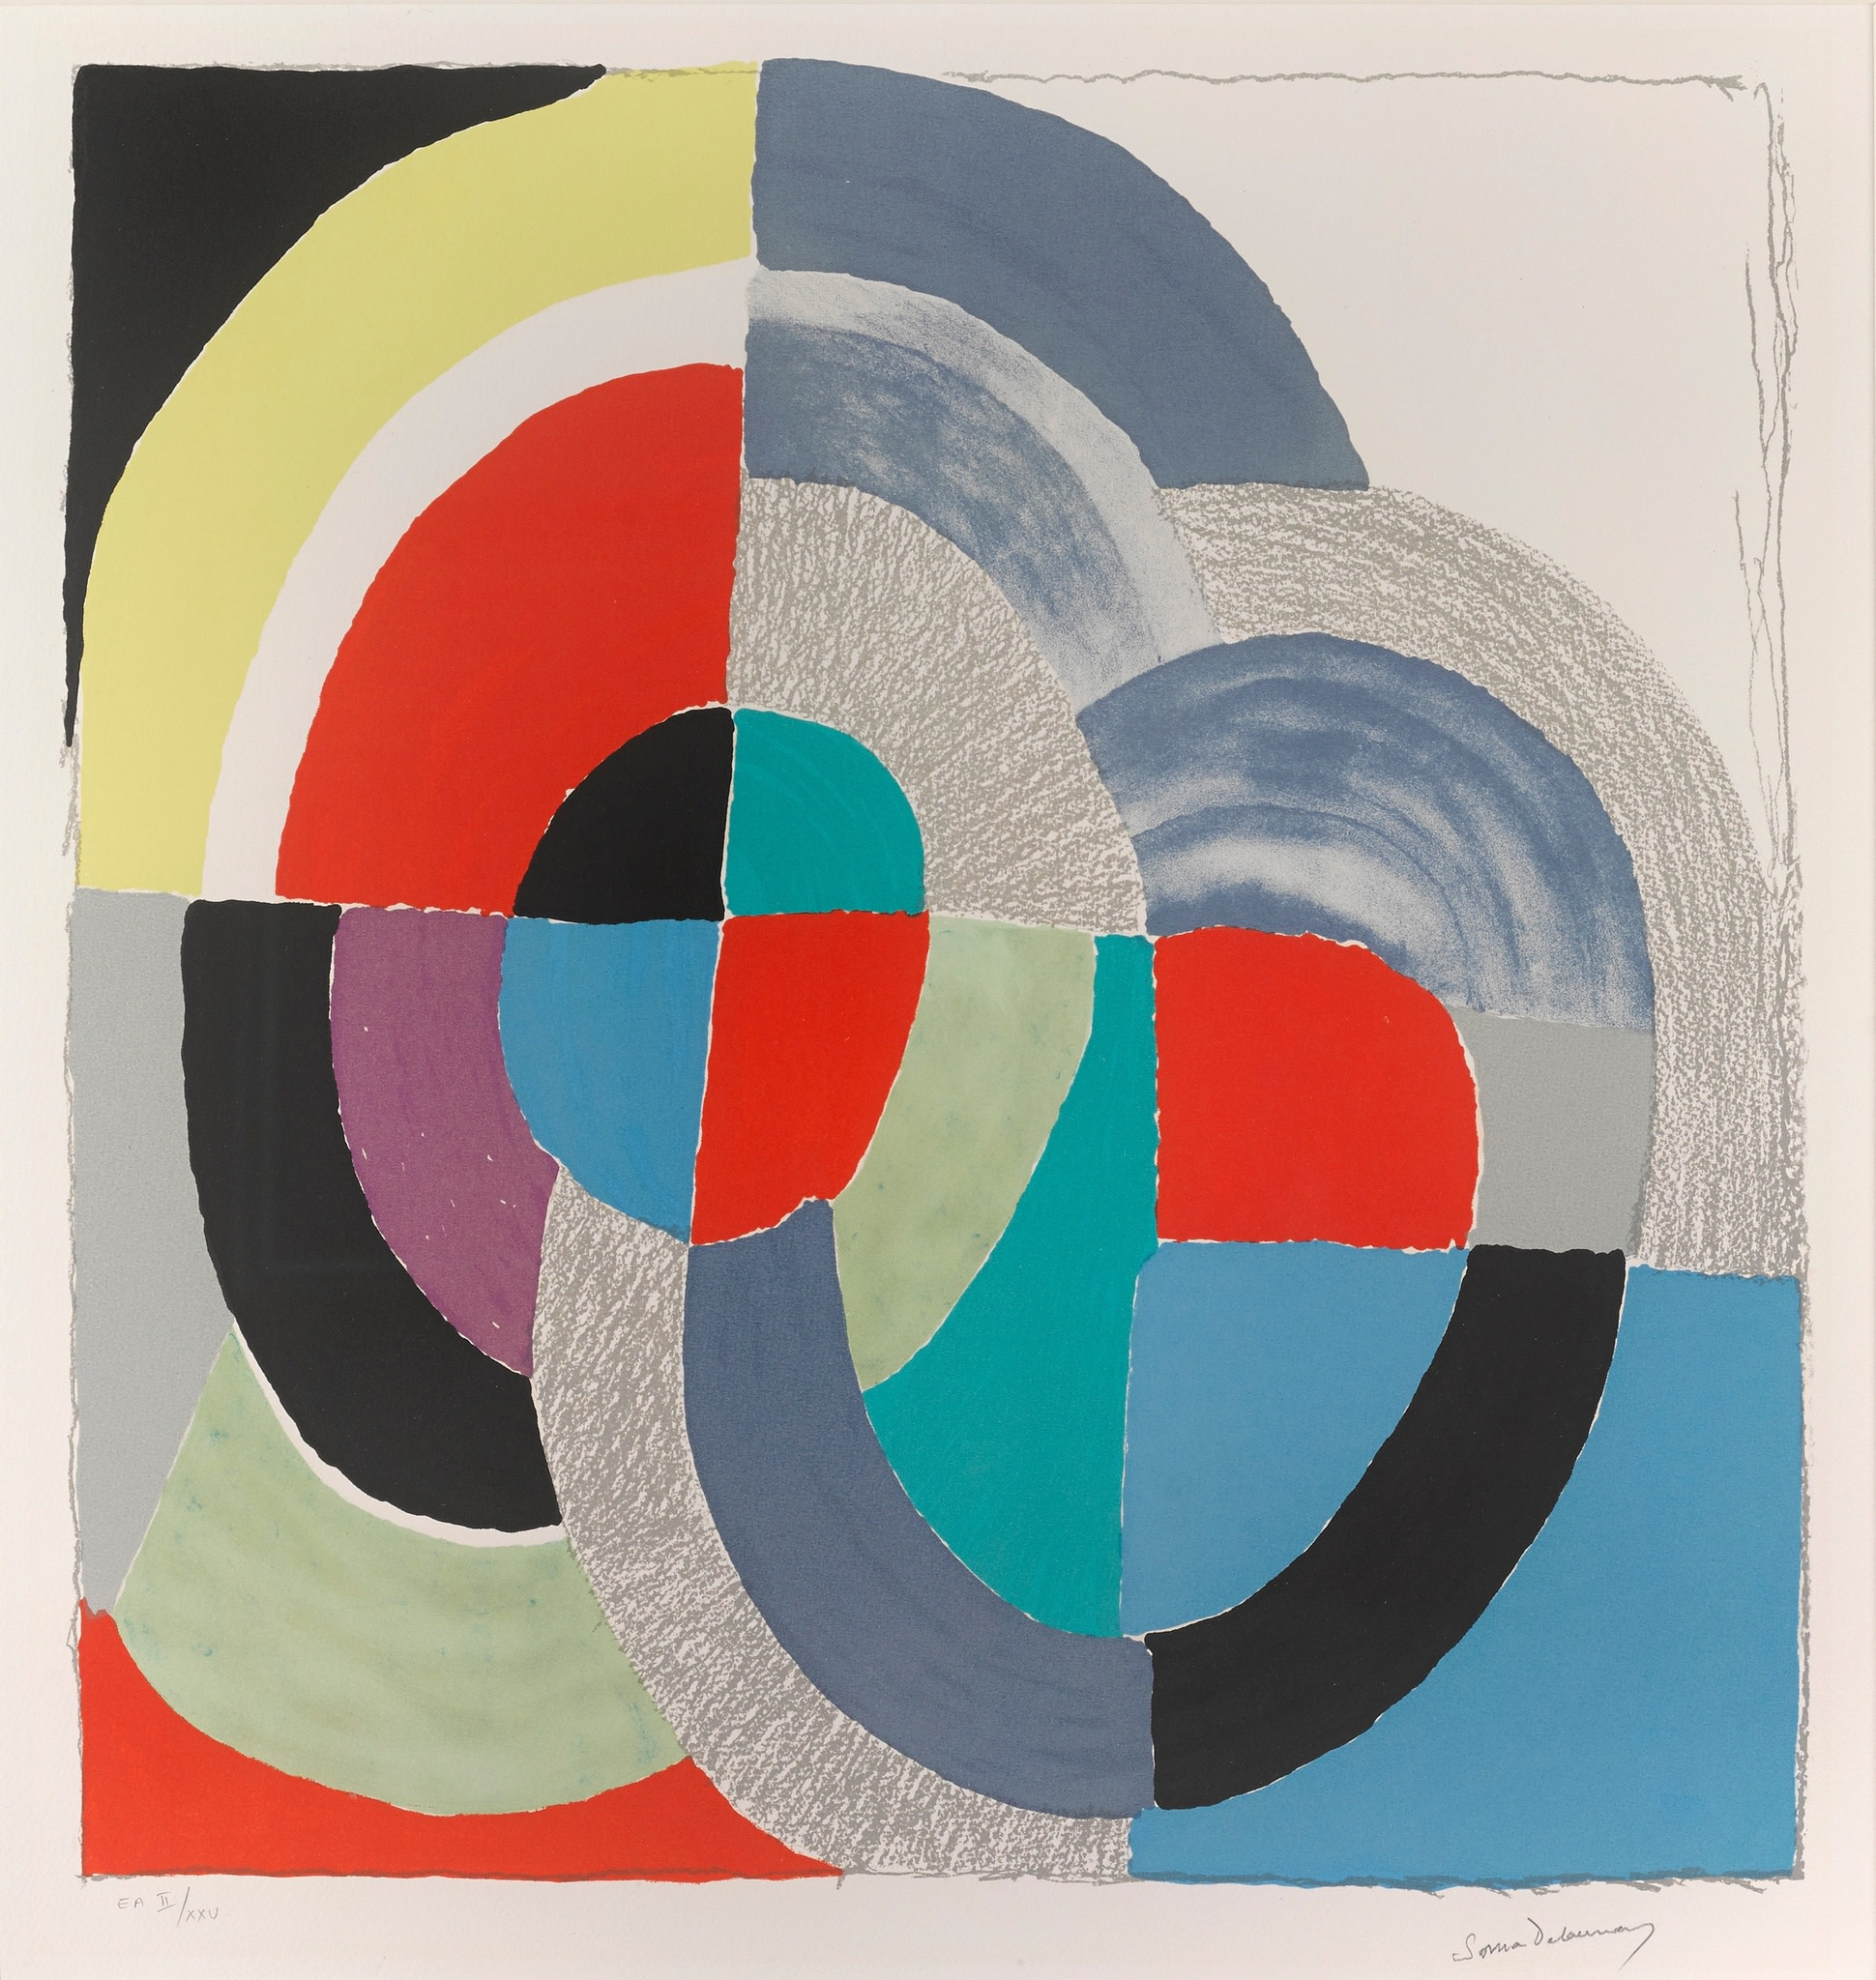 <span class=&#34;link fancybox-details-link&#34;><a href=&#34;/artists/39-sonia-delaunay/works/189/&#34;>View Detail Page</a></span><div class=&#34;artist&#34;><strong>Sonia Delaunay</strong></div> 1885 - 1979 <div class=&#34;title&#34;><em>Russian Easter</em>, 1970</div> <div class=&#34;signed_and_dated&#34;>Signed in pencil lower right</div> <div class=&#34;medium&#34;>Coloured lithograph</div> <div class=&#34;dimensions&#34;>24 3/4 x 31 1/8 in<br /> 63 x 79 cm</div> <div class=&#34;edition_details&#34;>E.A II/XXV (epreuve d'artist/artist's proof)</div><div class=&#34;copyright_line&#34;>Copyright The Artist</div>